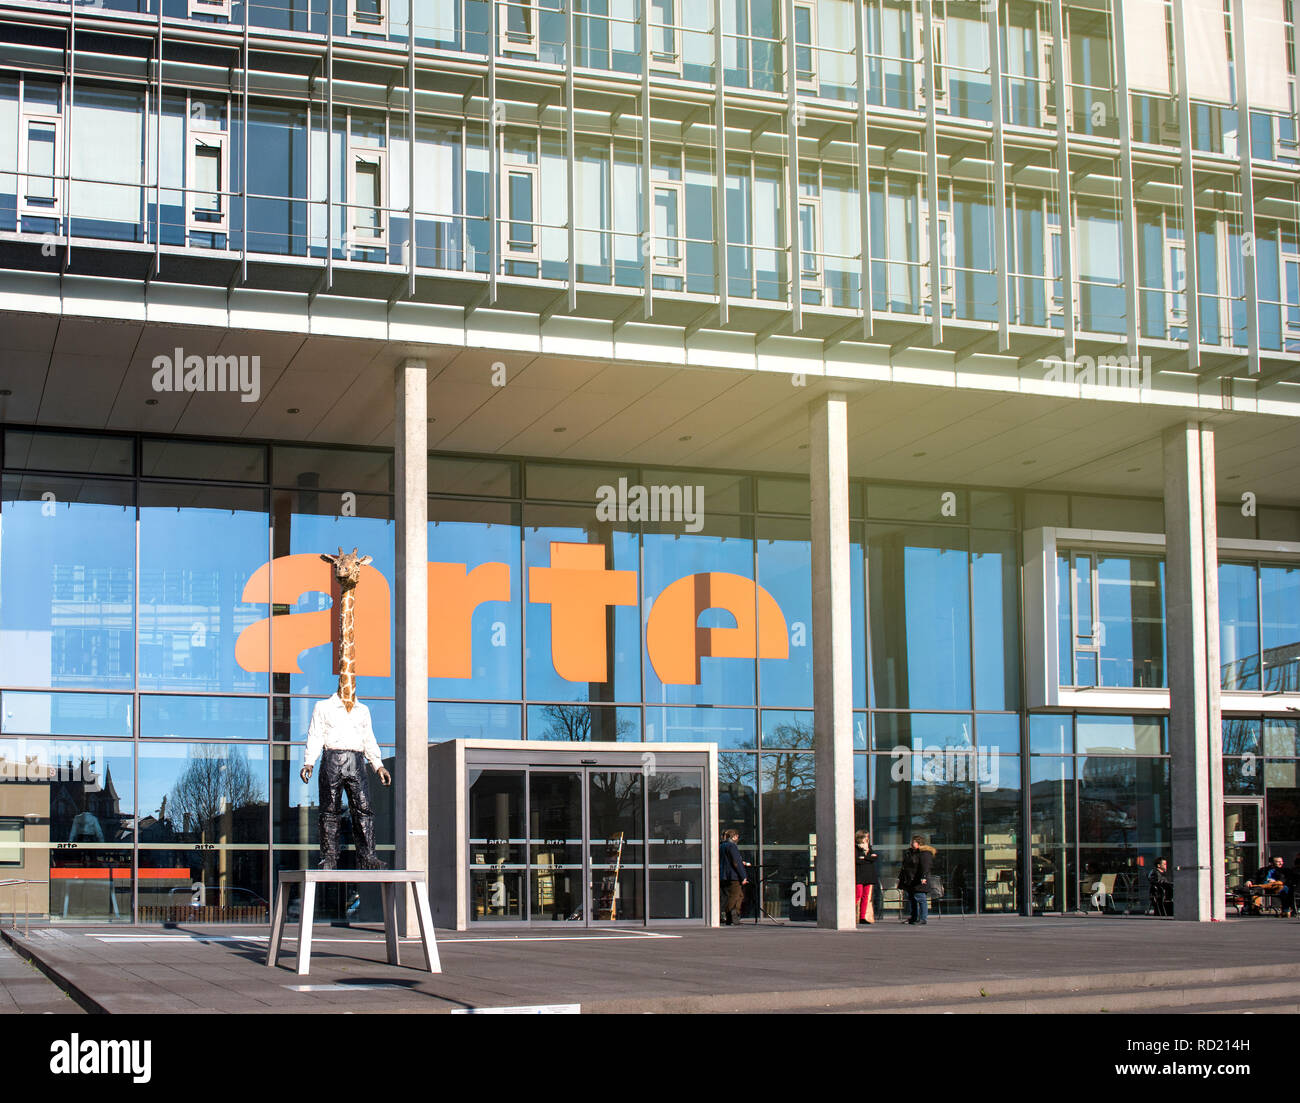 STRASBOURG, FRANCE - APR 6, 2018: Facade of Arte Association Relative a la Television Europeenne television headquarter in Strasbourg with the L'homme-girafe statue monument by Stephan Balkenhol. - Stock Image